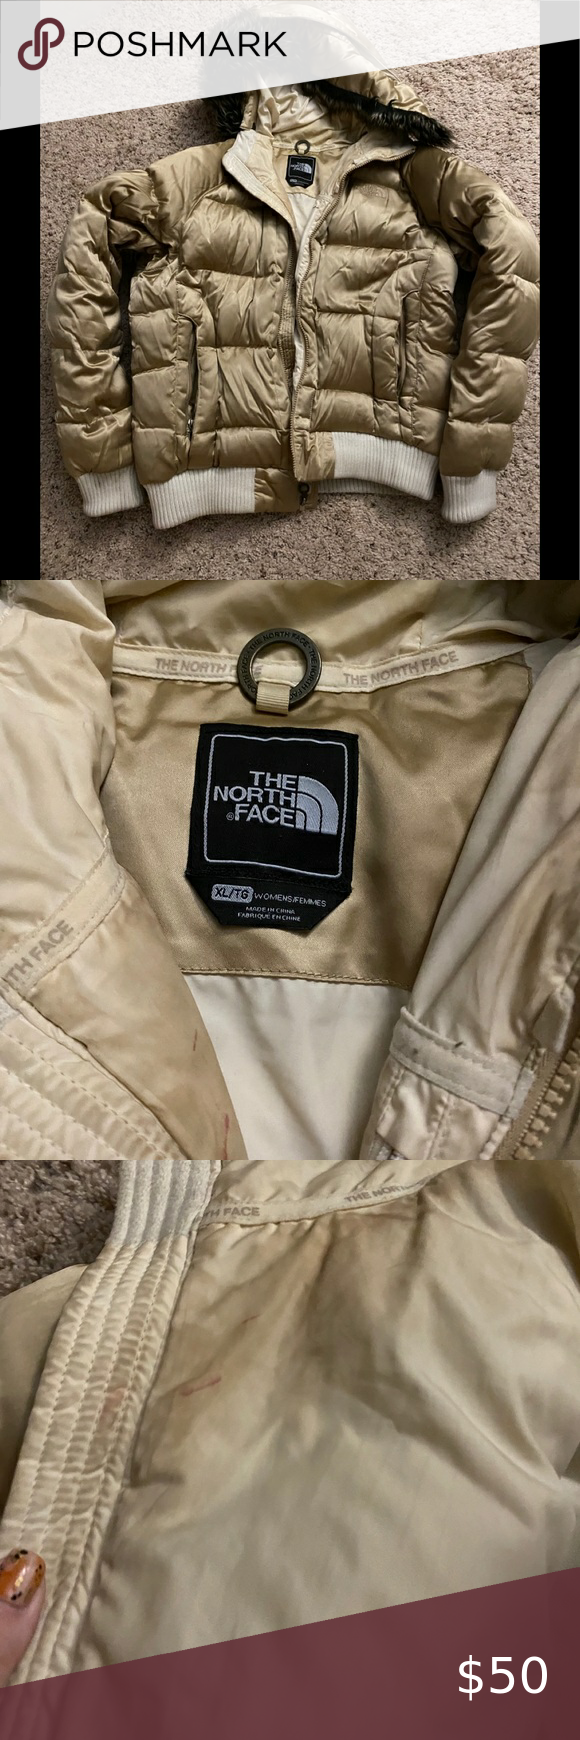 North Face Gold Puffer Jacket The North Face Puffer Jackets North Face Jacket [ 1740 x 580 Pixel ]